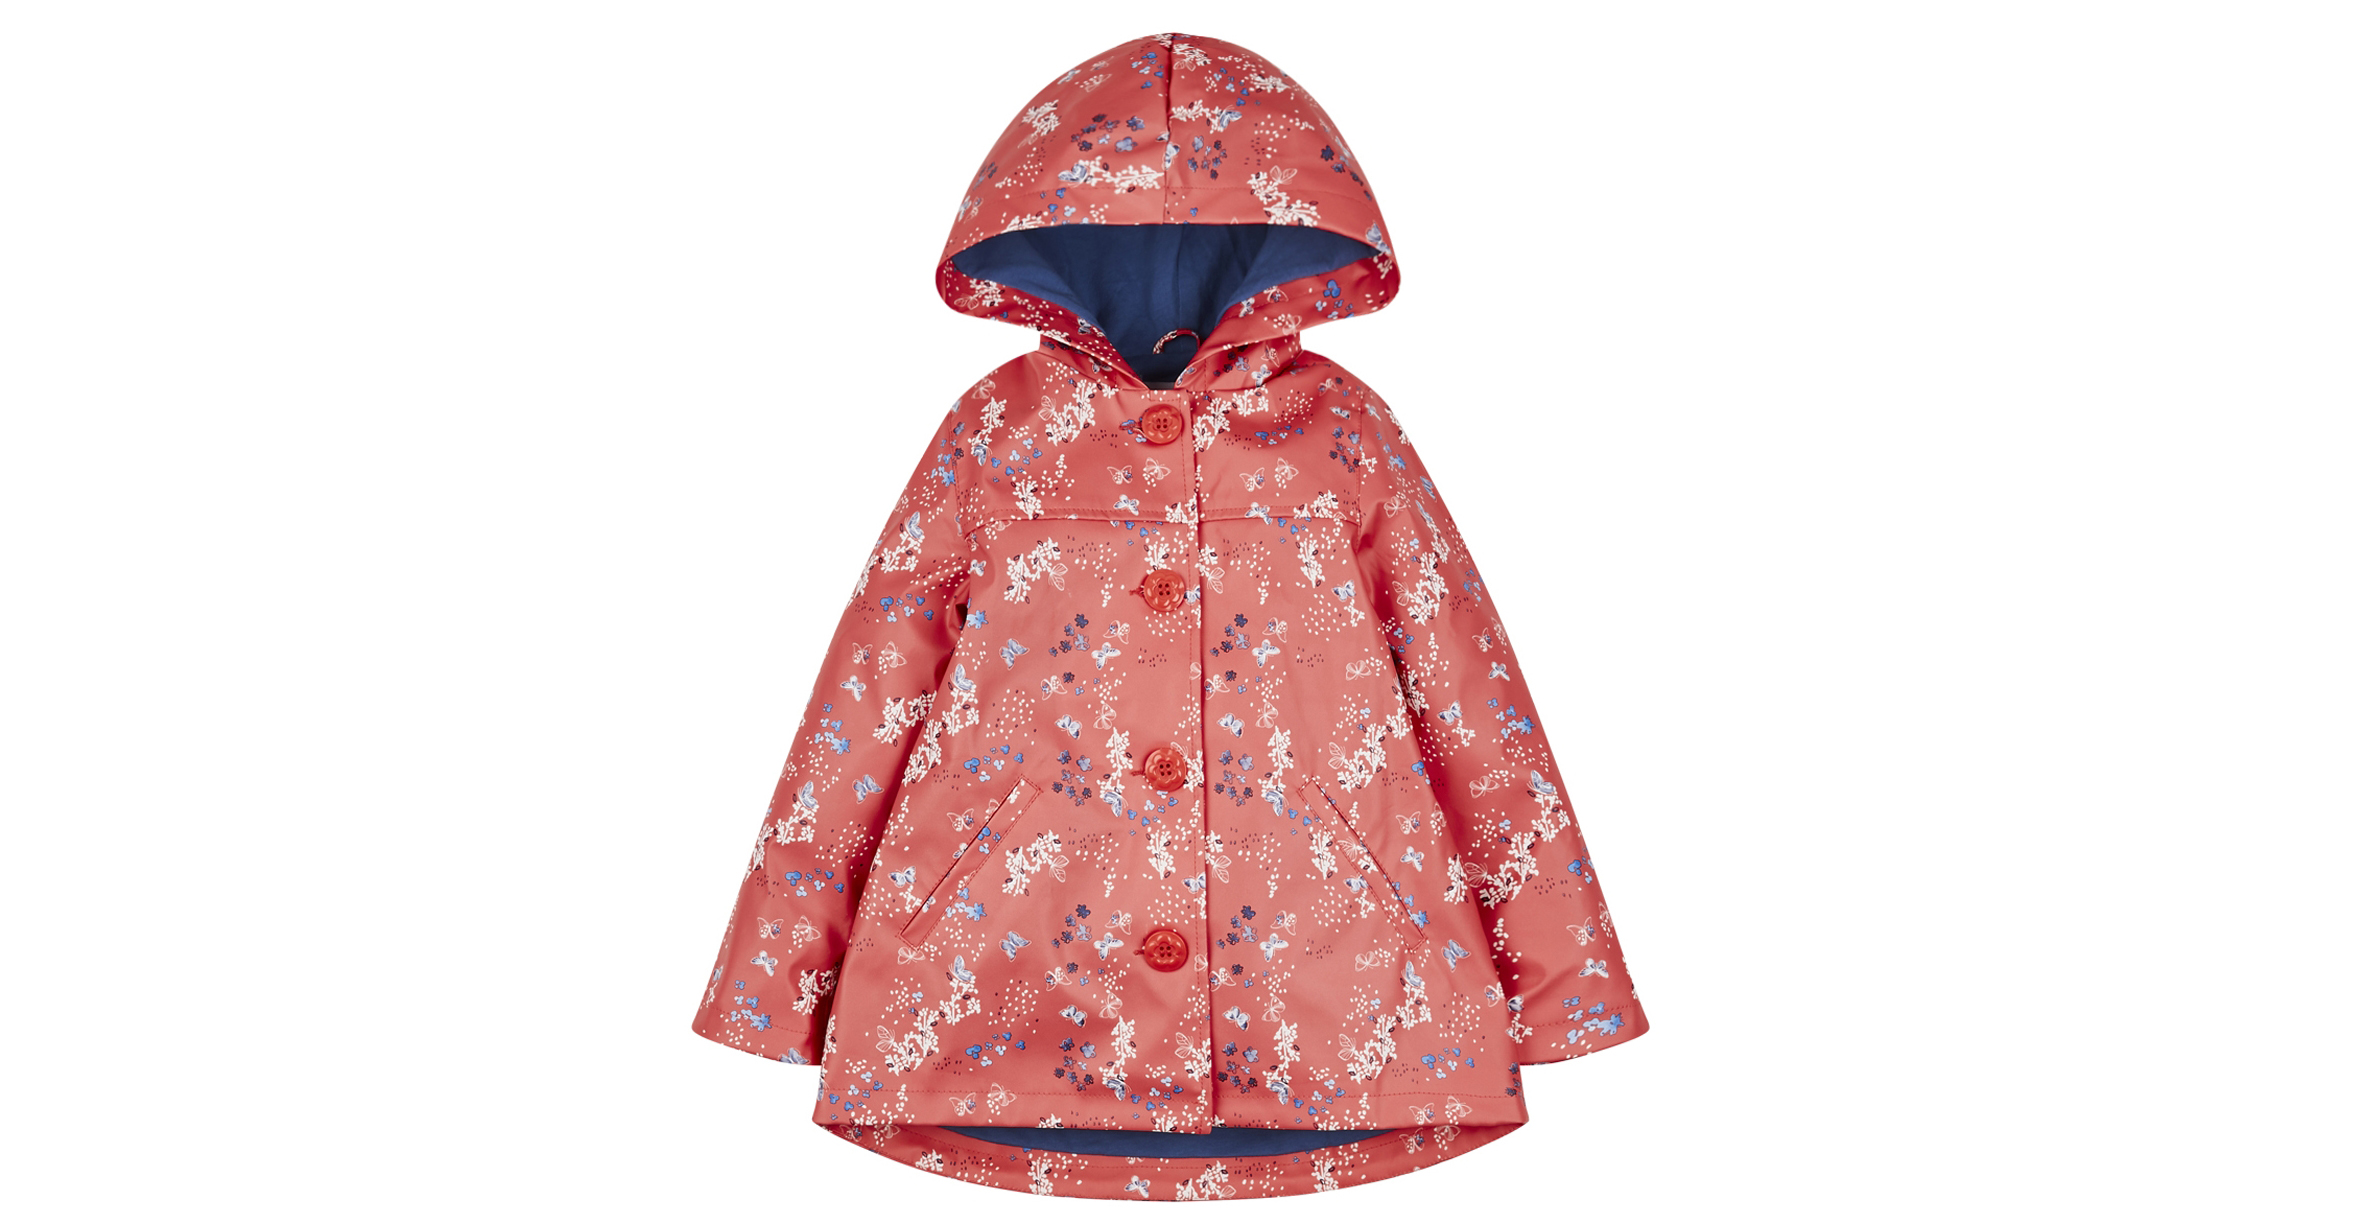 27fb48d3279 13 rainy-day essentials to keep the kids dry during April showers ...